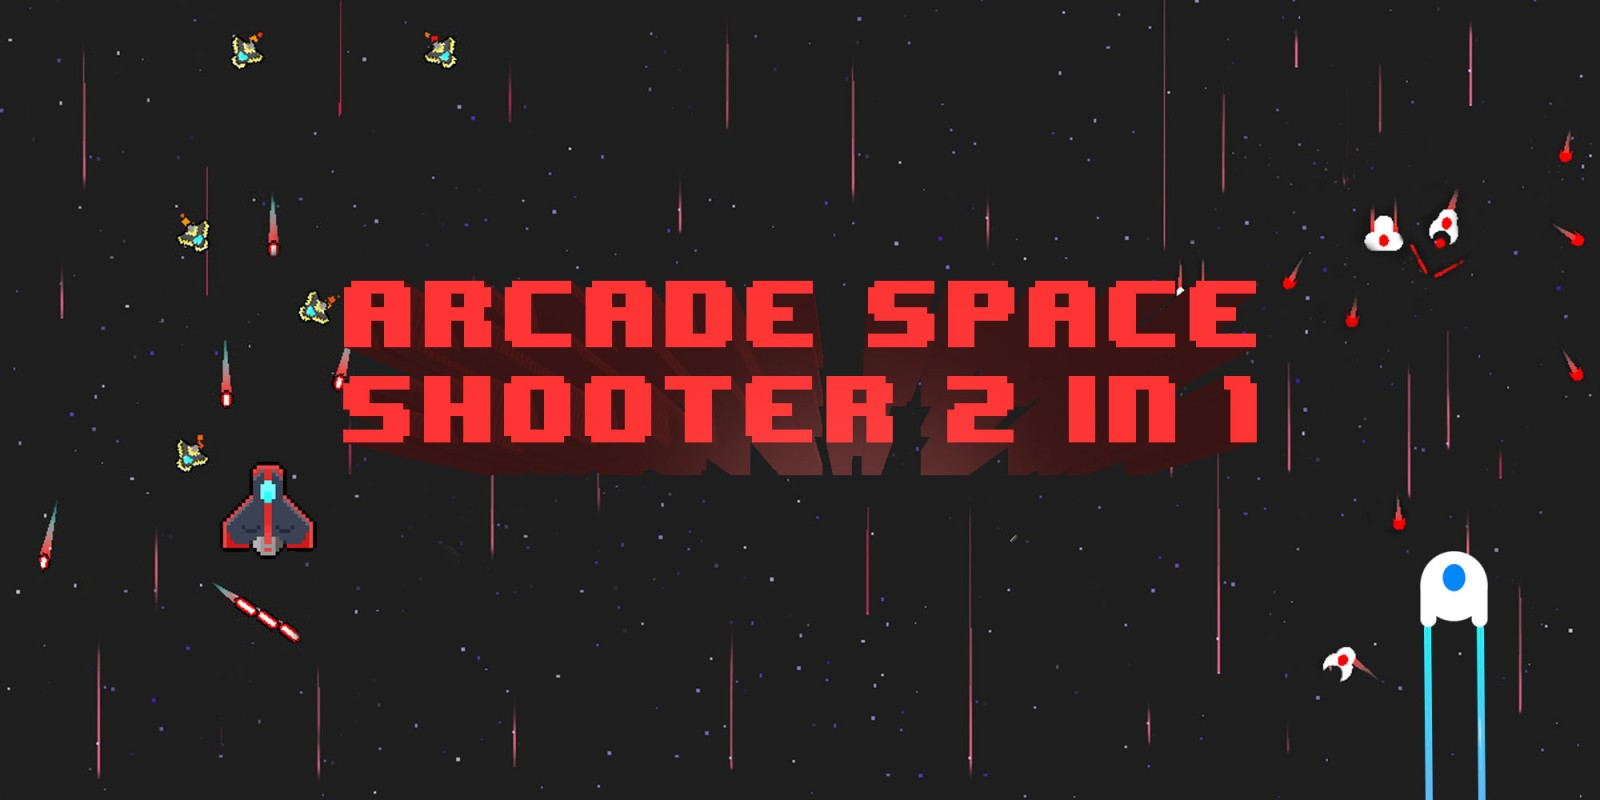 Arcade Space Shooter 2 in 1